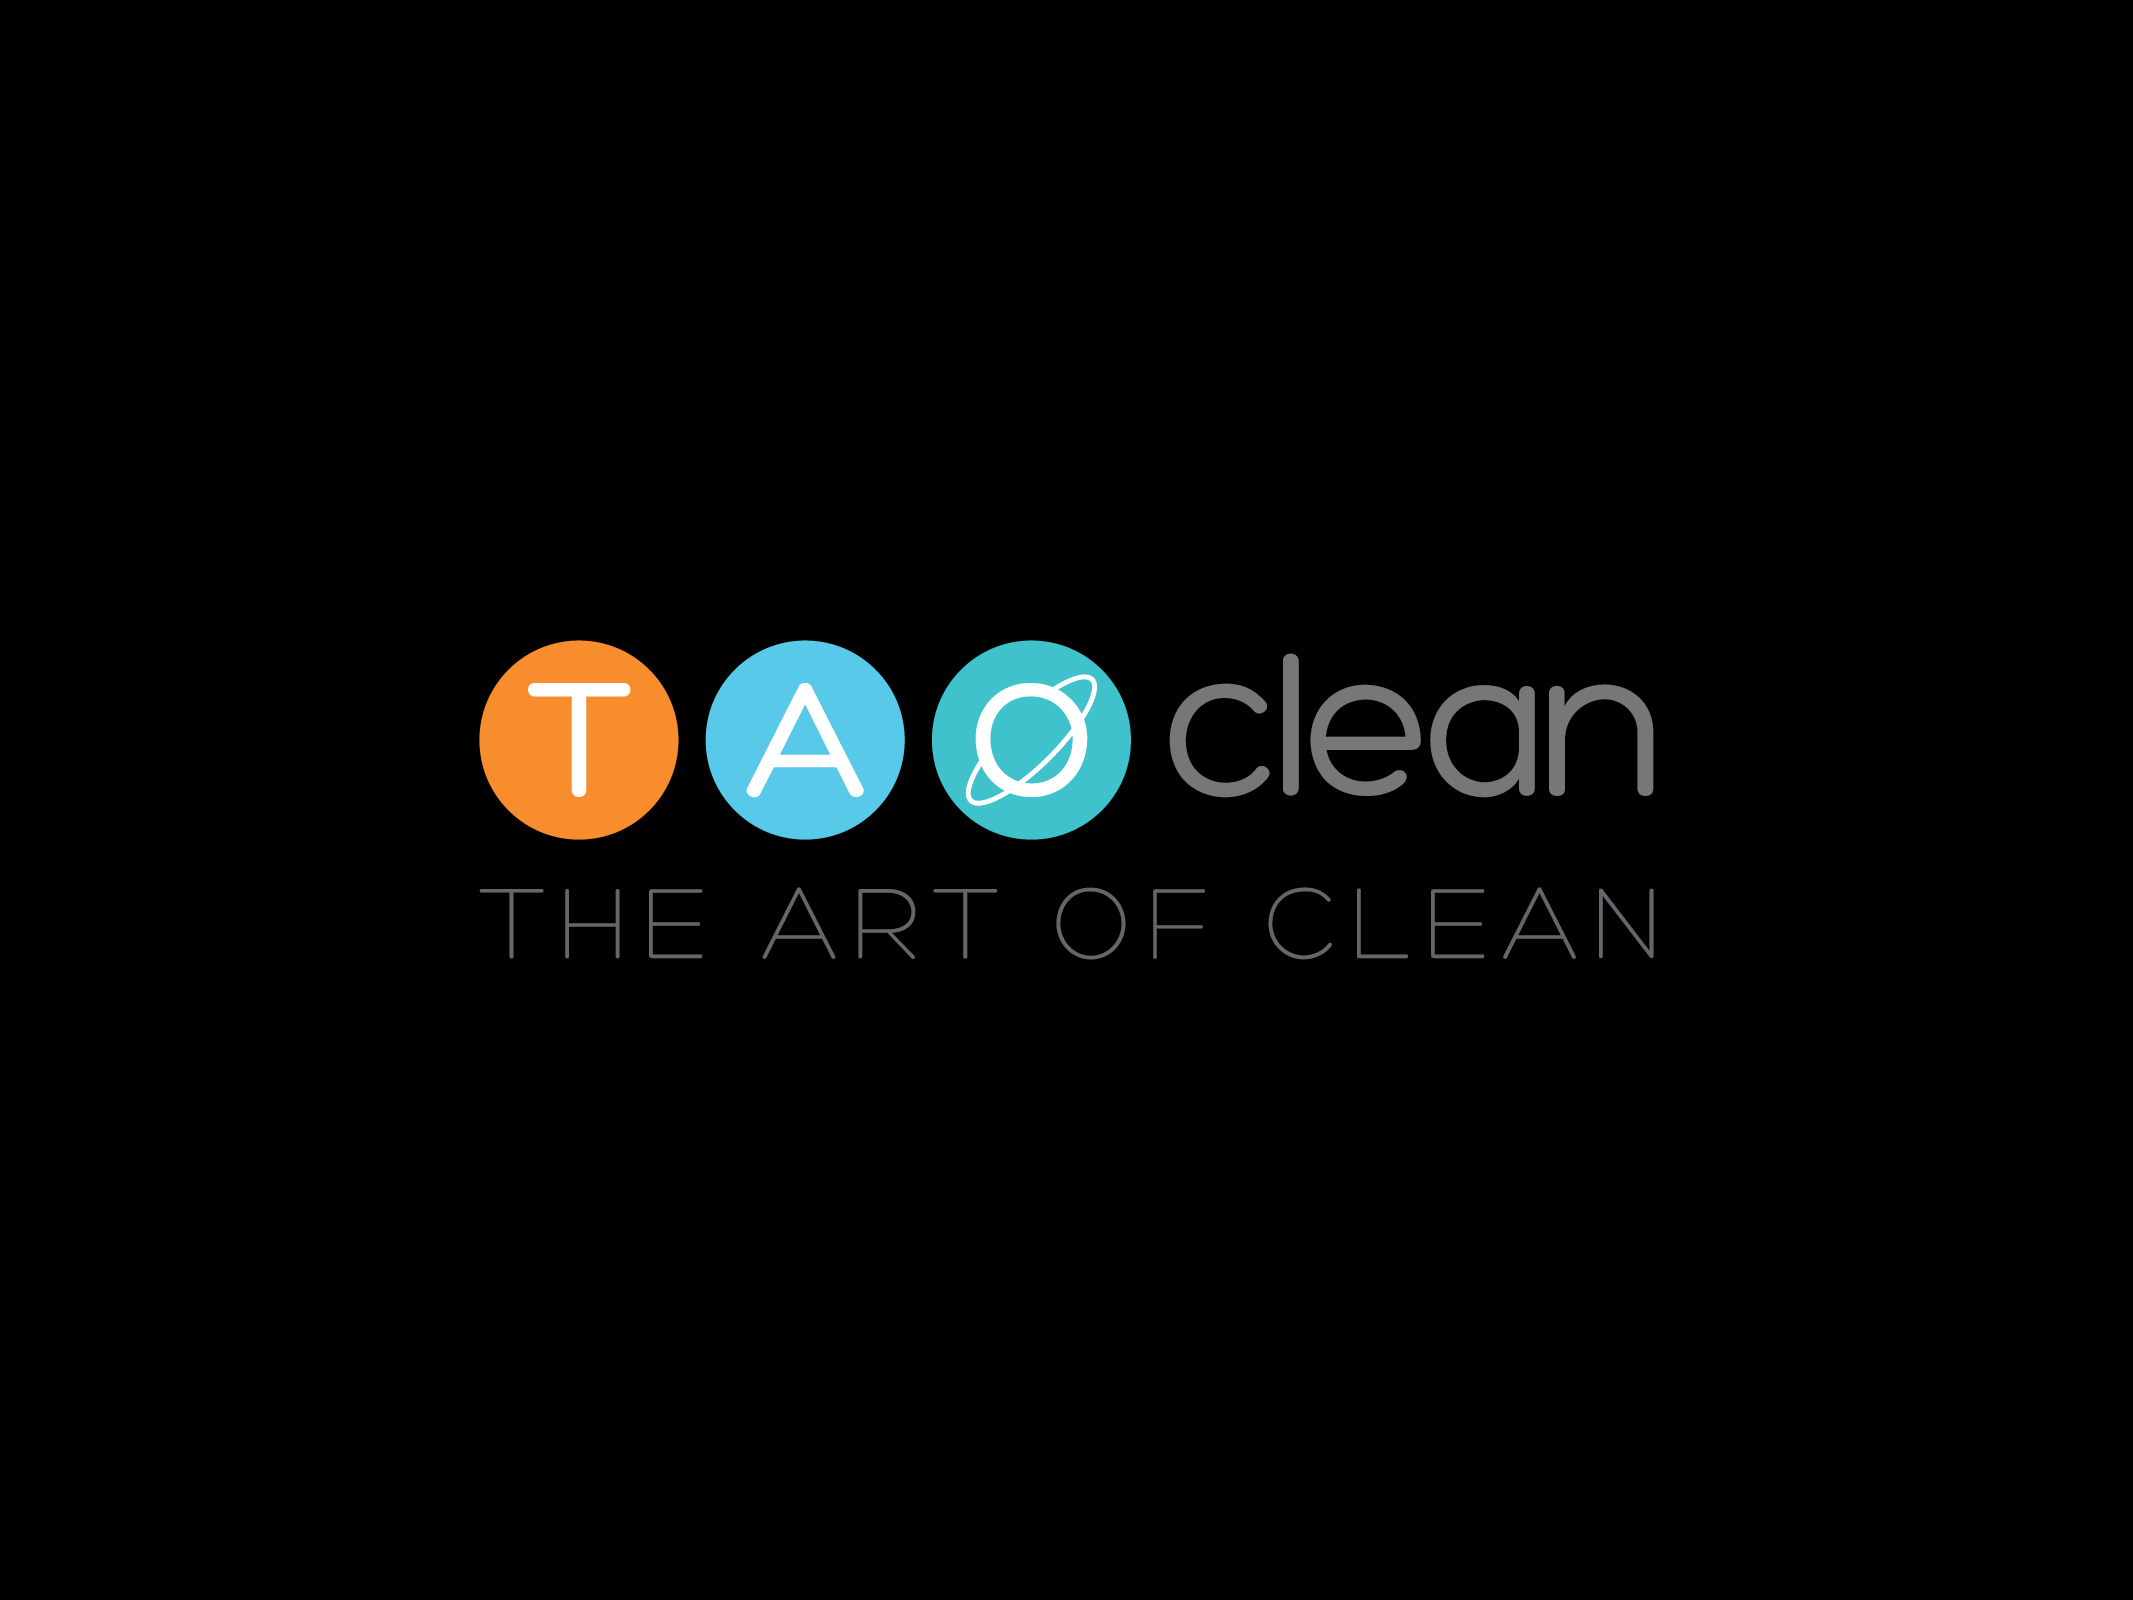 The Art of Clean - Product design & packaging / Brand IDENTITY / Brand Architecture / creative direction